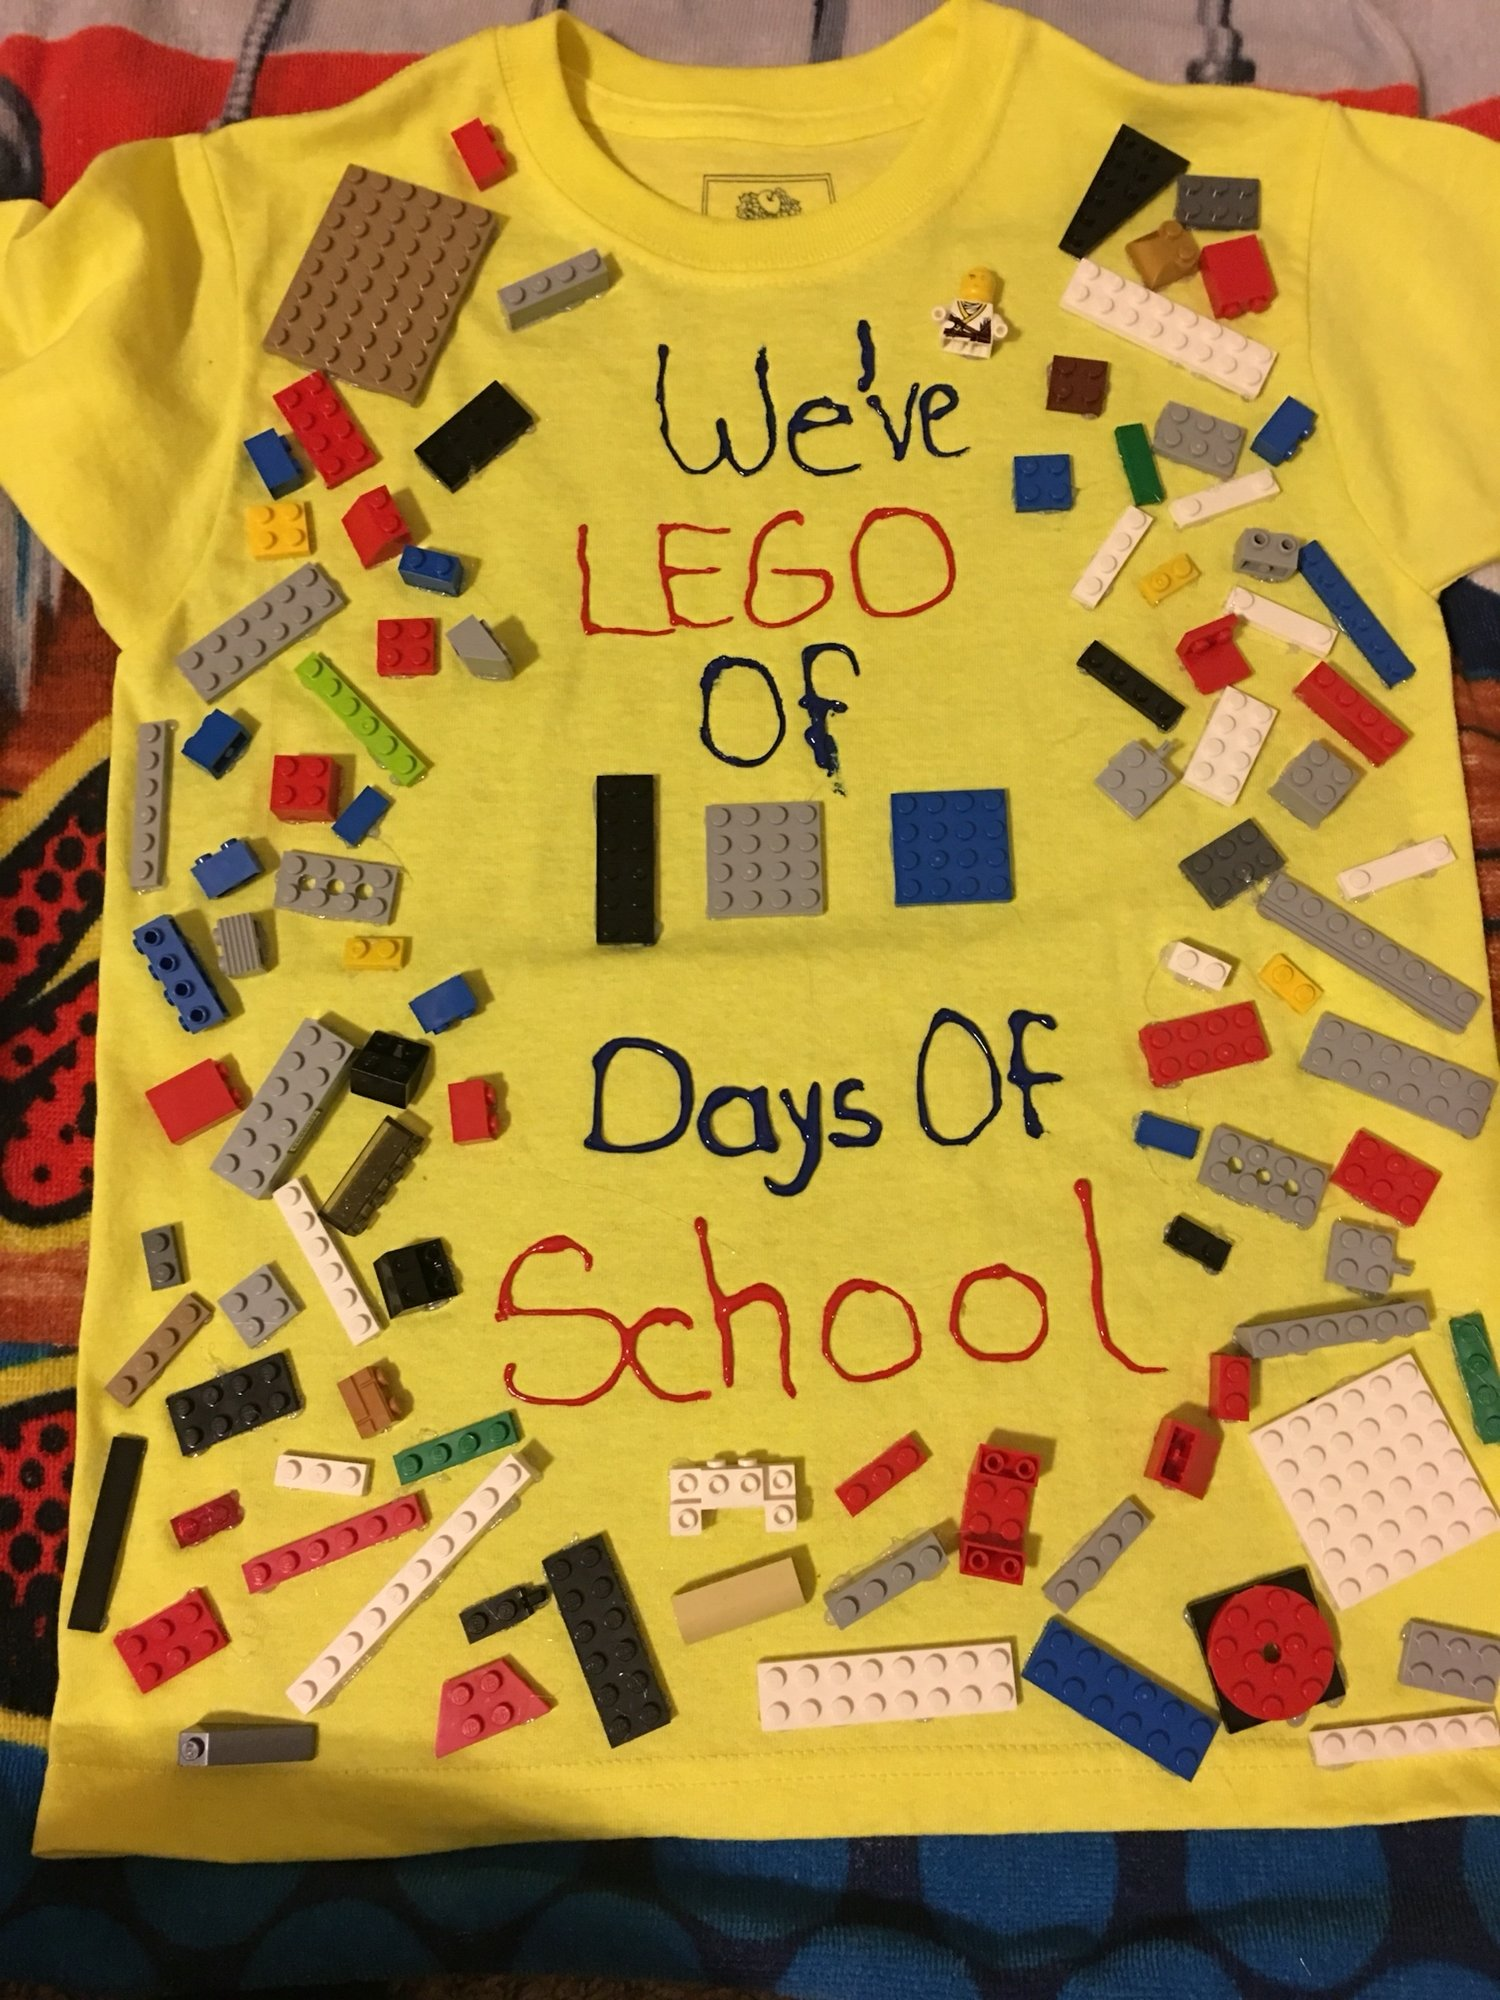 10 Amazing Ideas For The 100Th Day Of School weve lego 100 days of school 100th day t shirt my stuff 1 2021